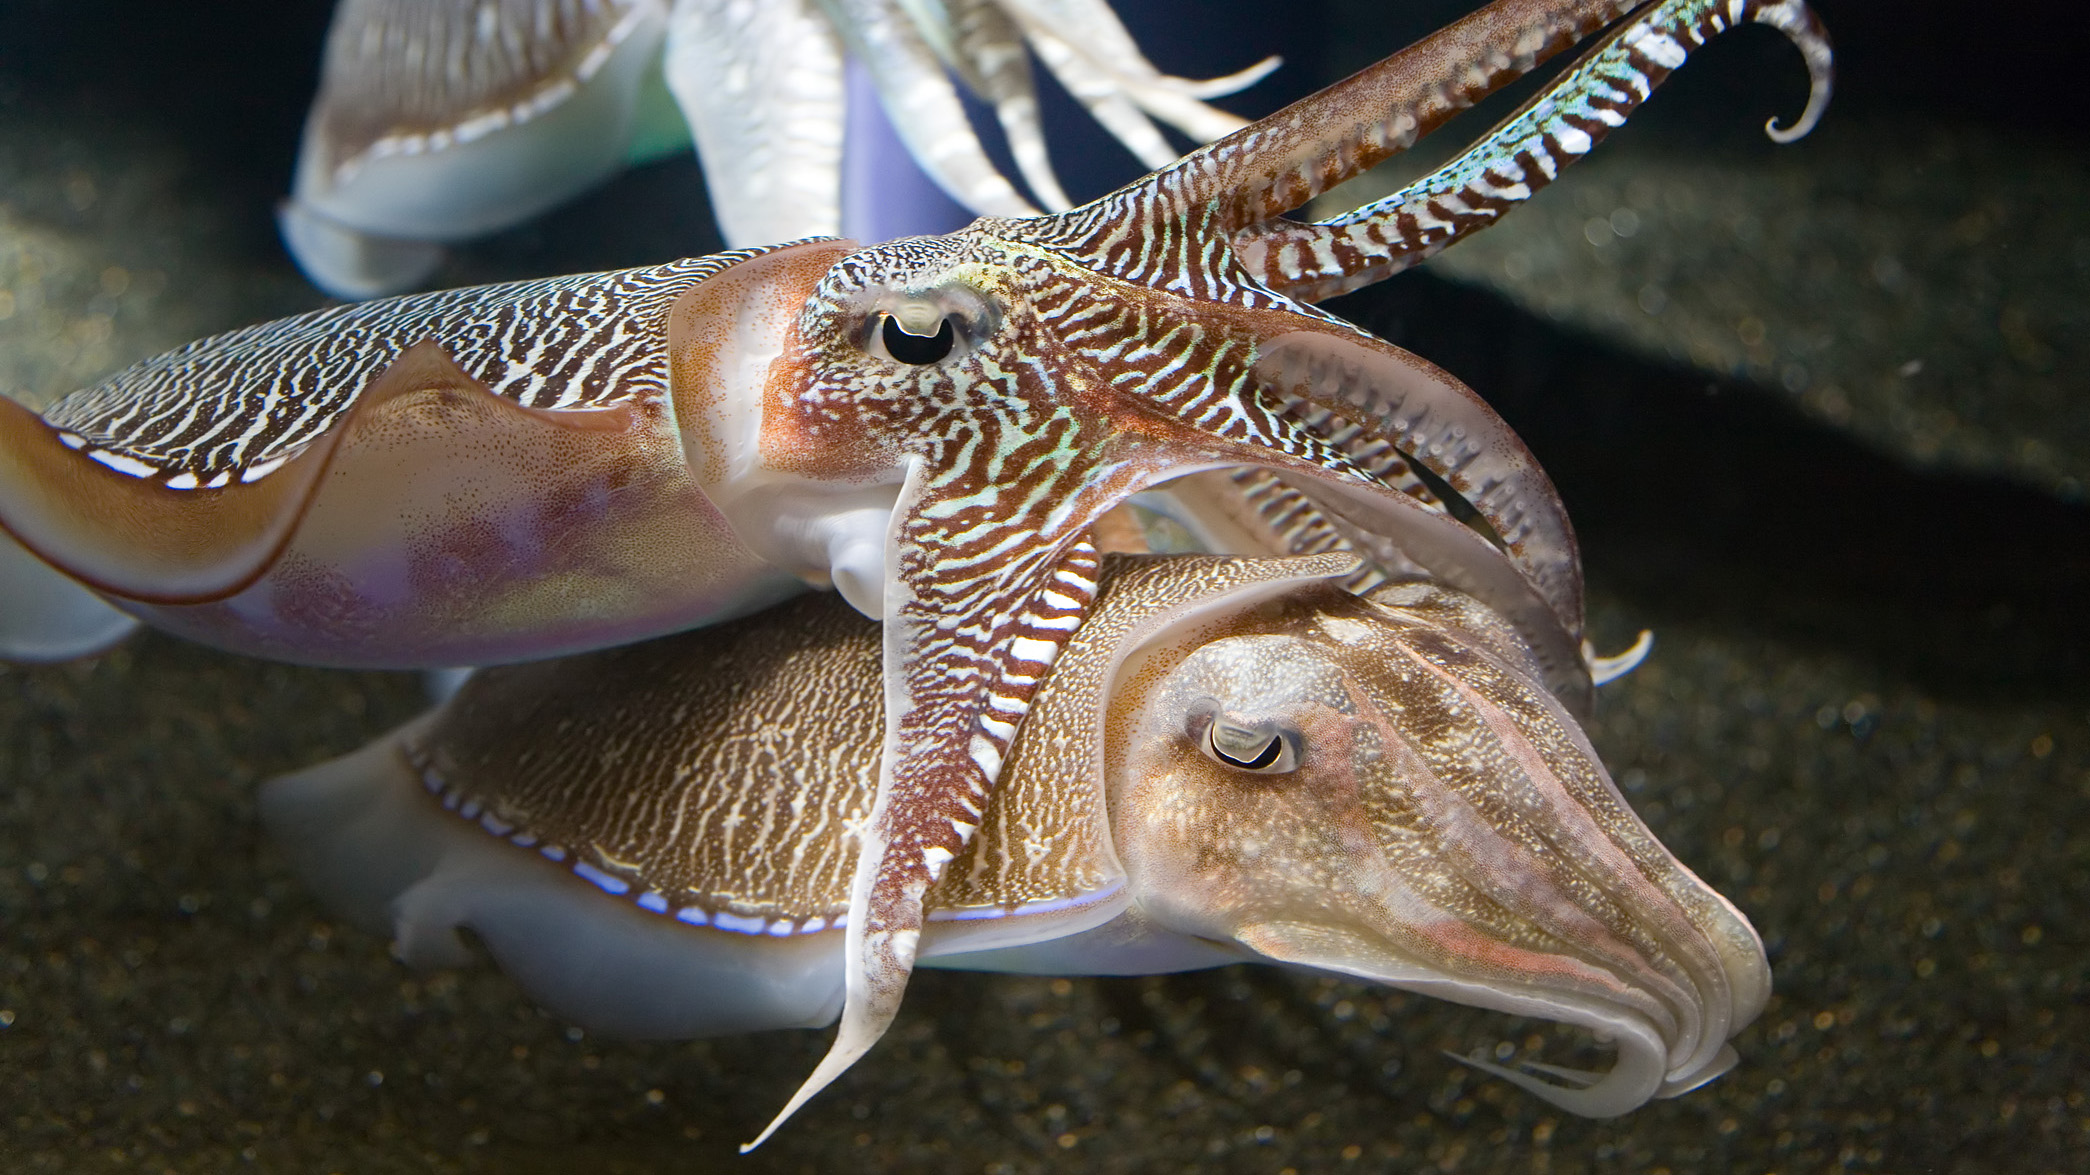 Georgia_Aquarium_-_Cuttlefish_Jan_2006